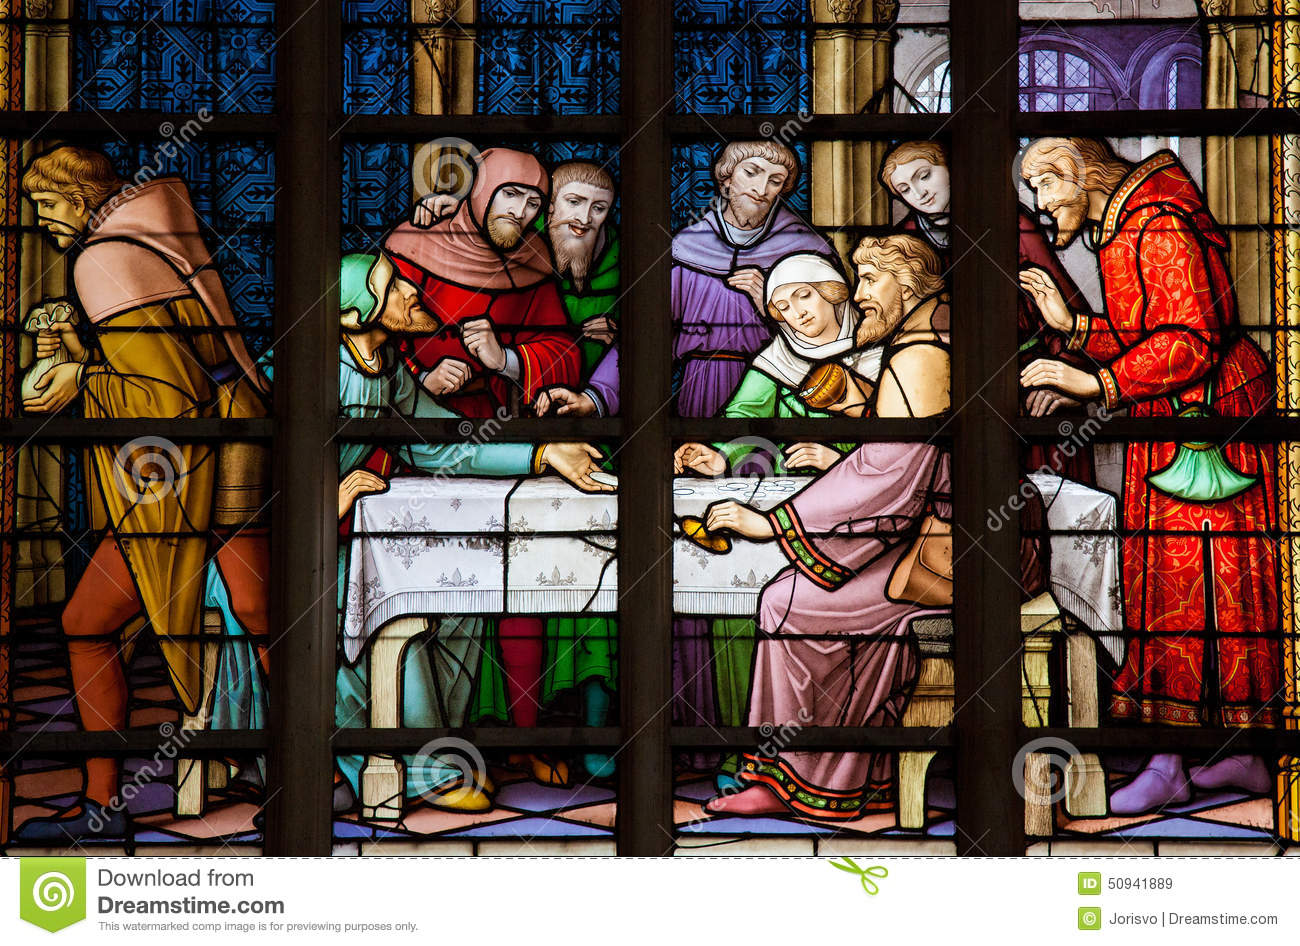 Antisemitic stained glass window in Brussels